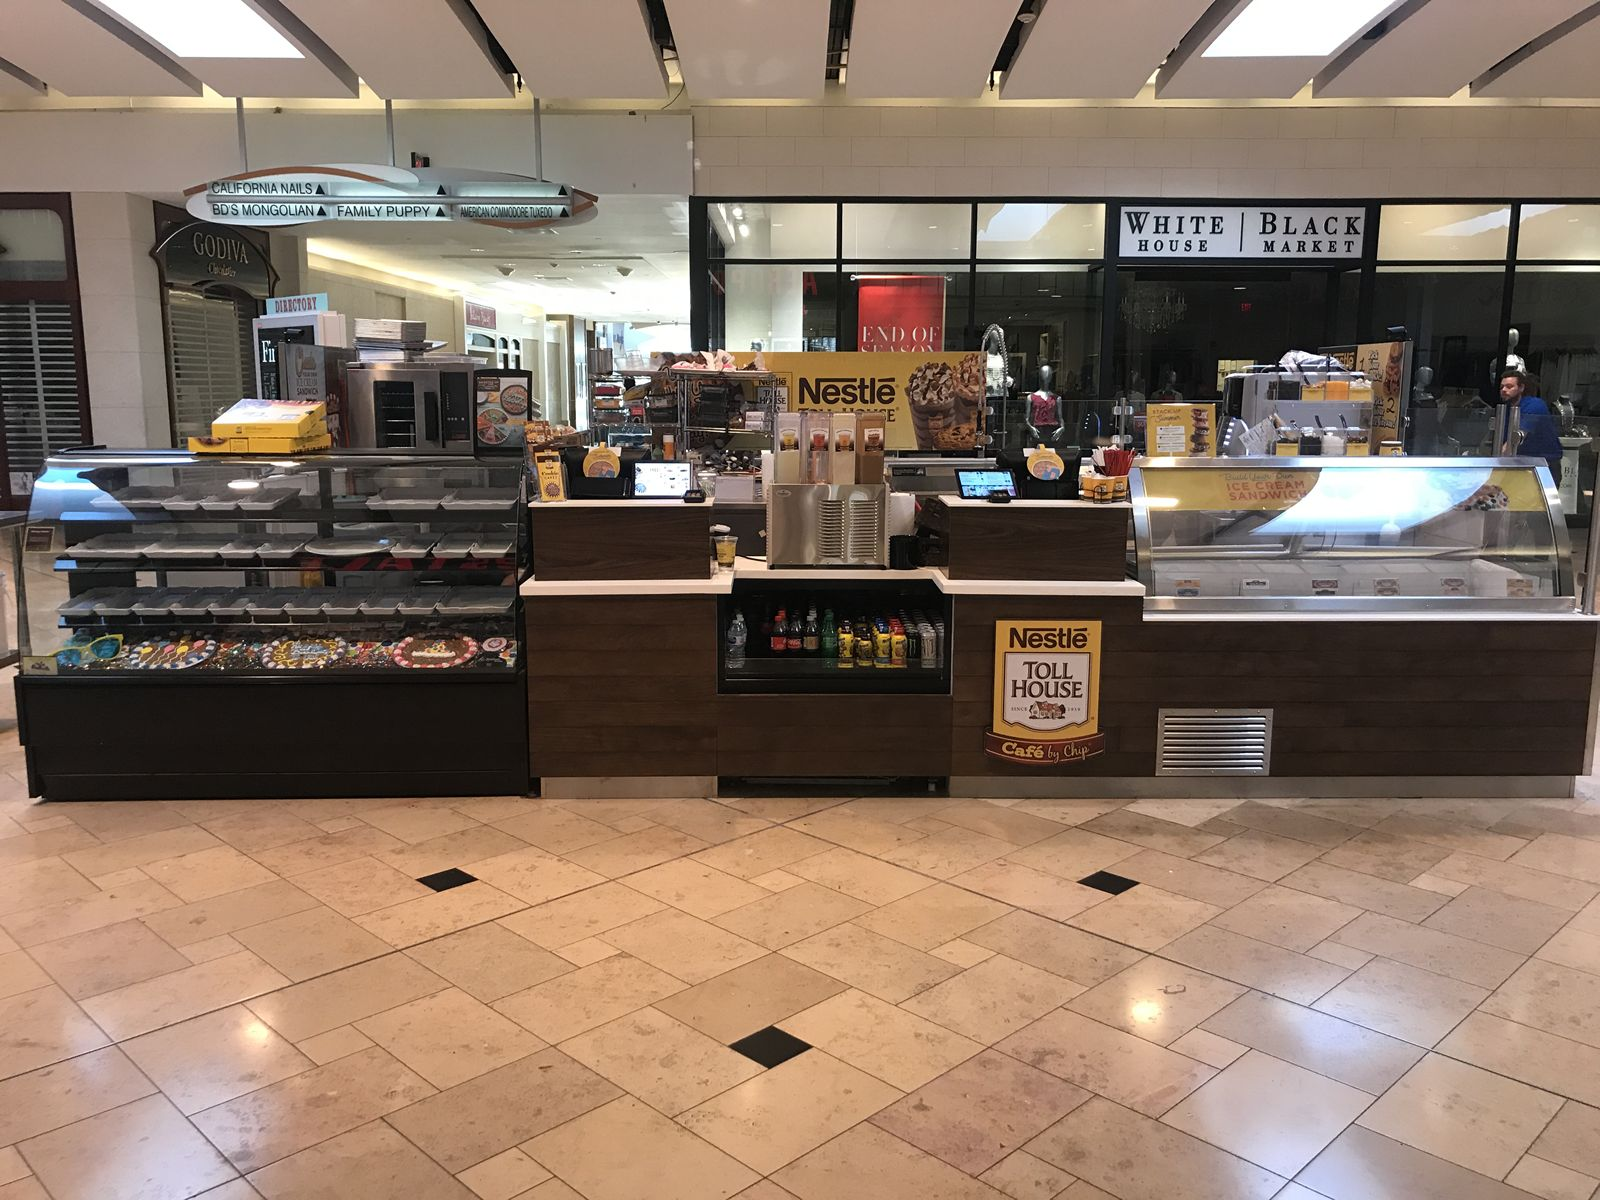 Ohio Welcomes First Nestlé Toll House Café by Chip